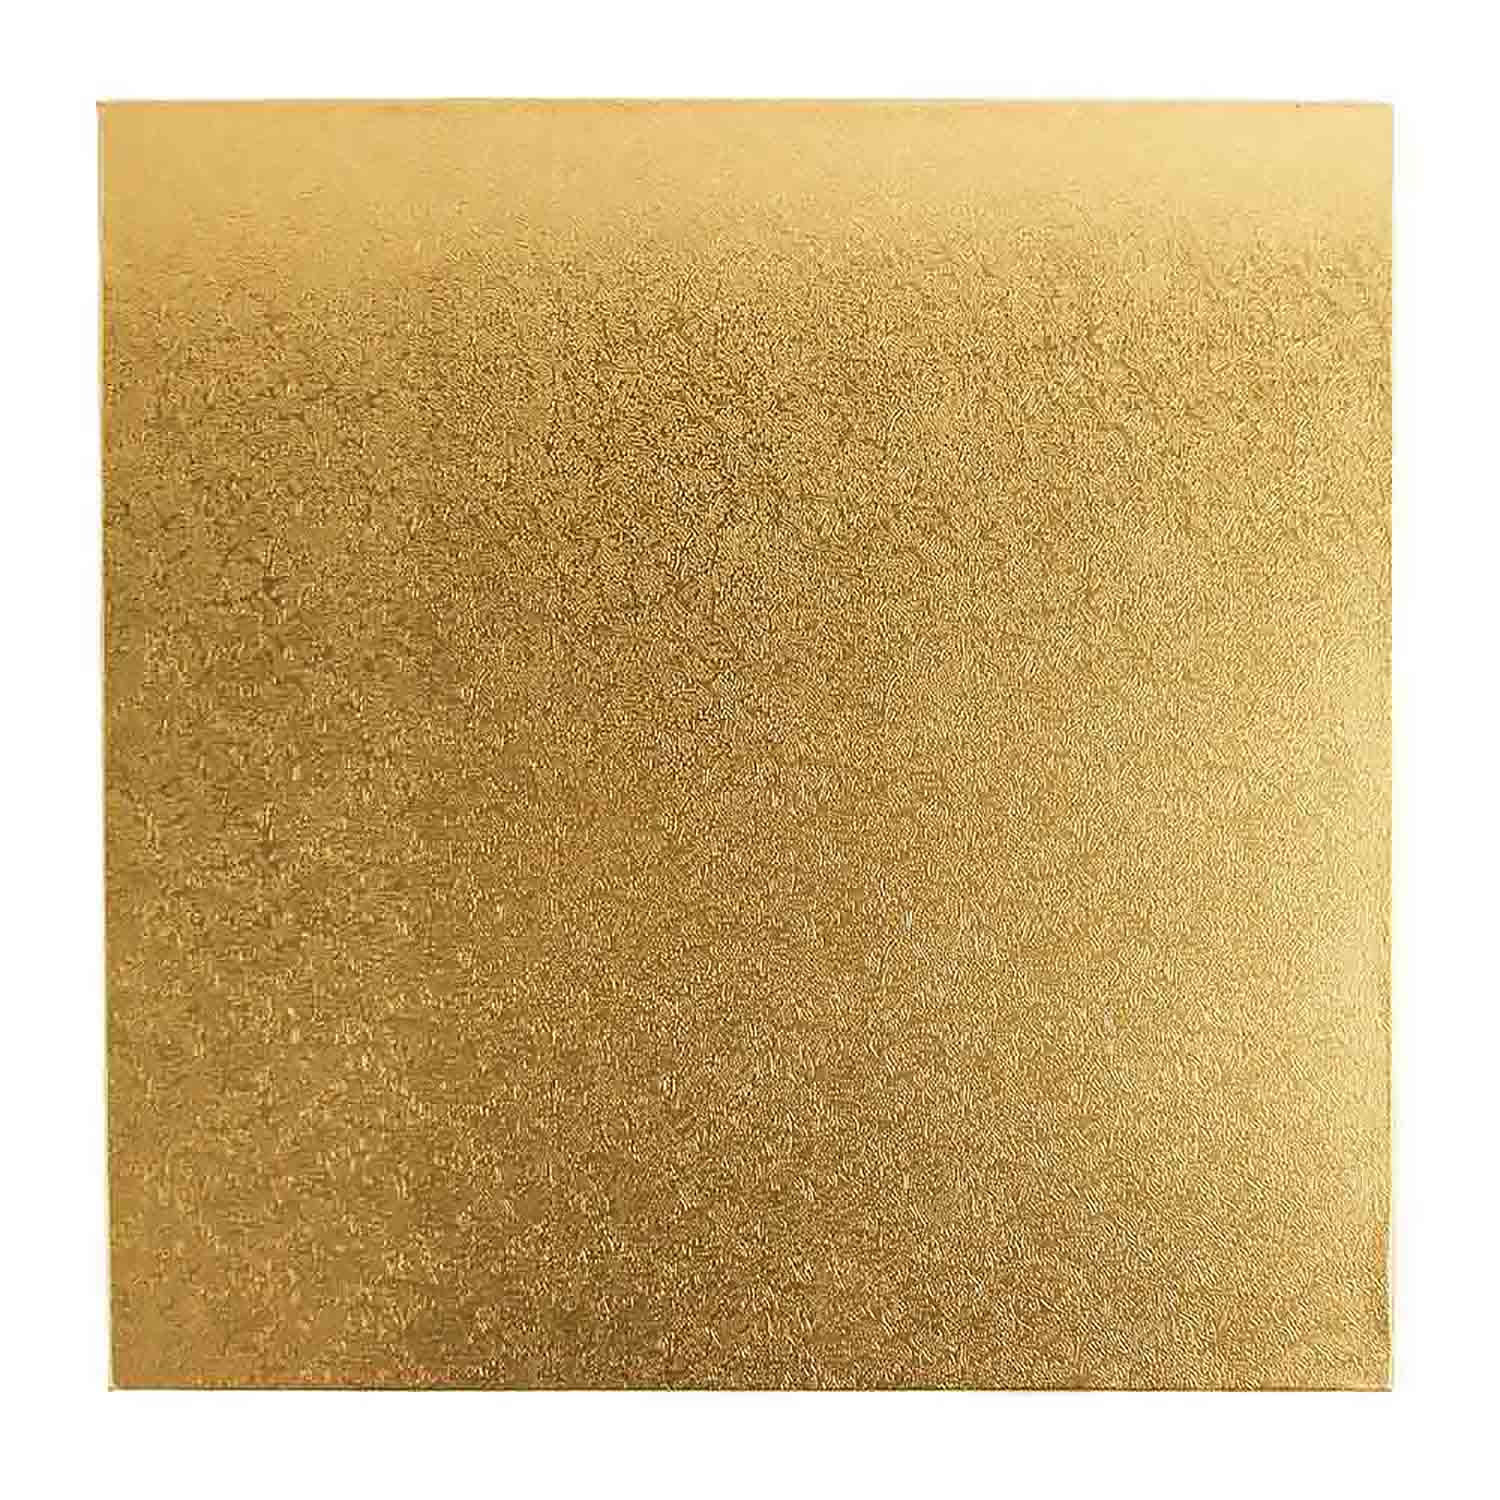 "8"" Square Gold Foil Sturdy Board"